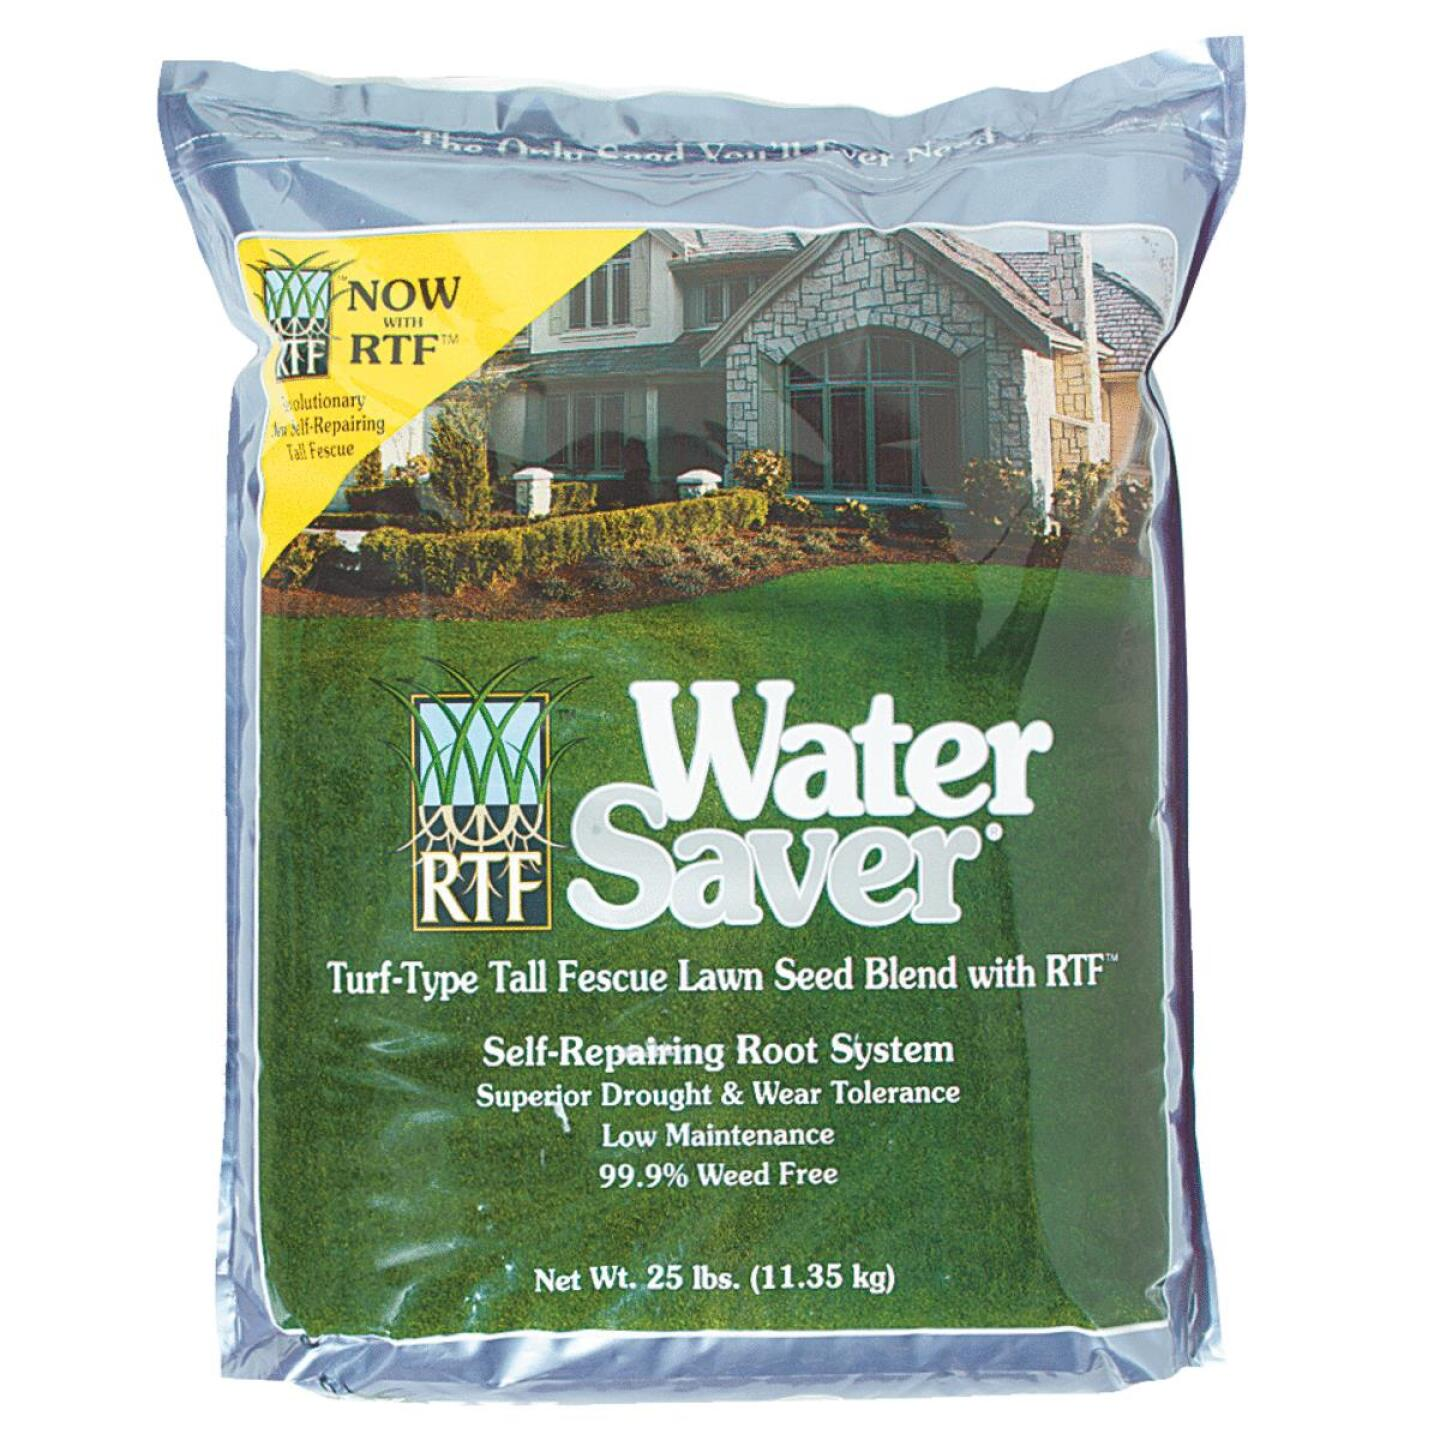 Water Saver 25 Lb. 2500 Sq. Ft. Coverage Tall Fescue Grass Seed Image 1